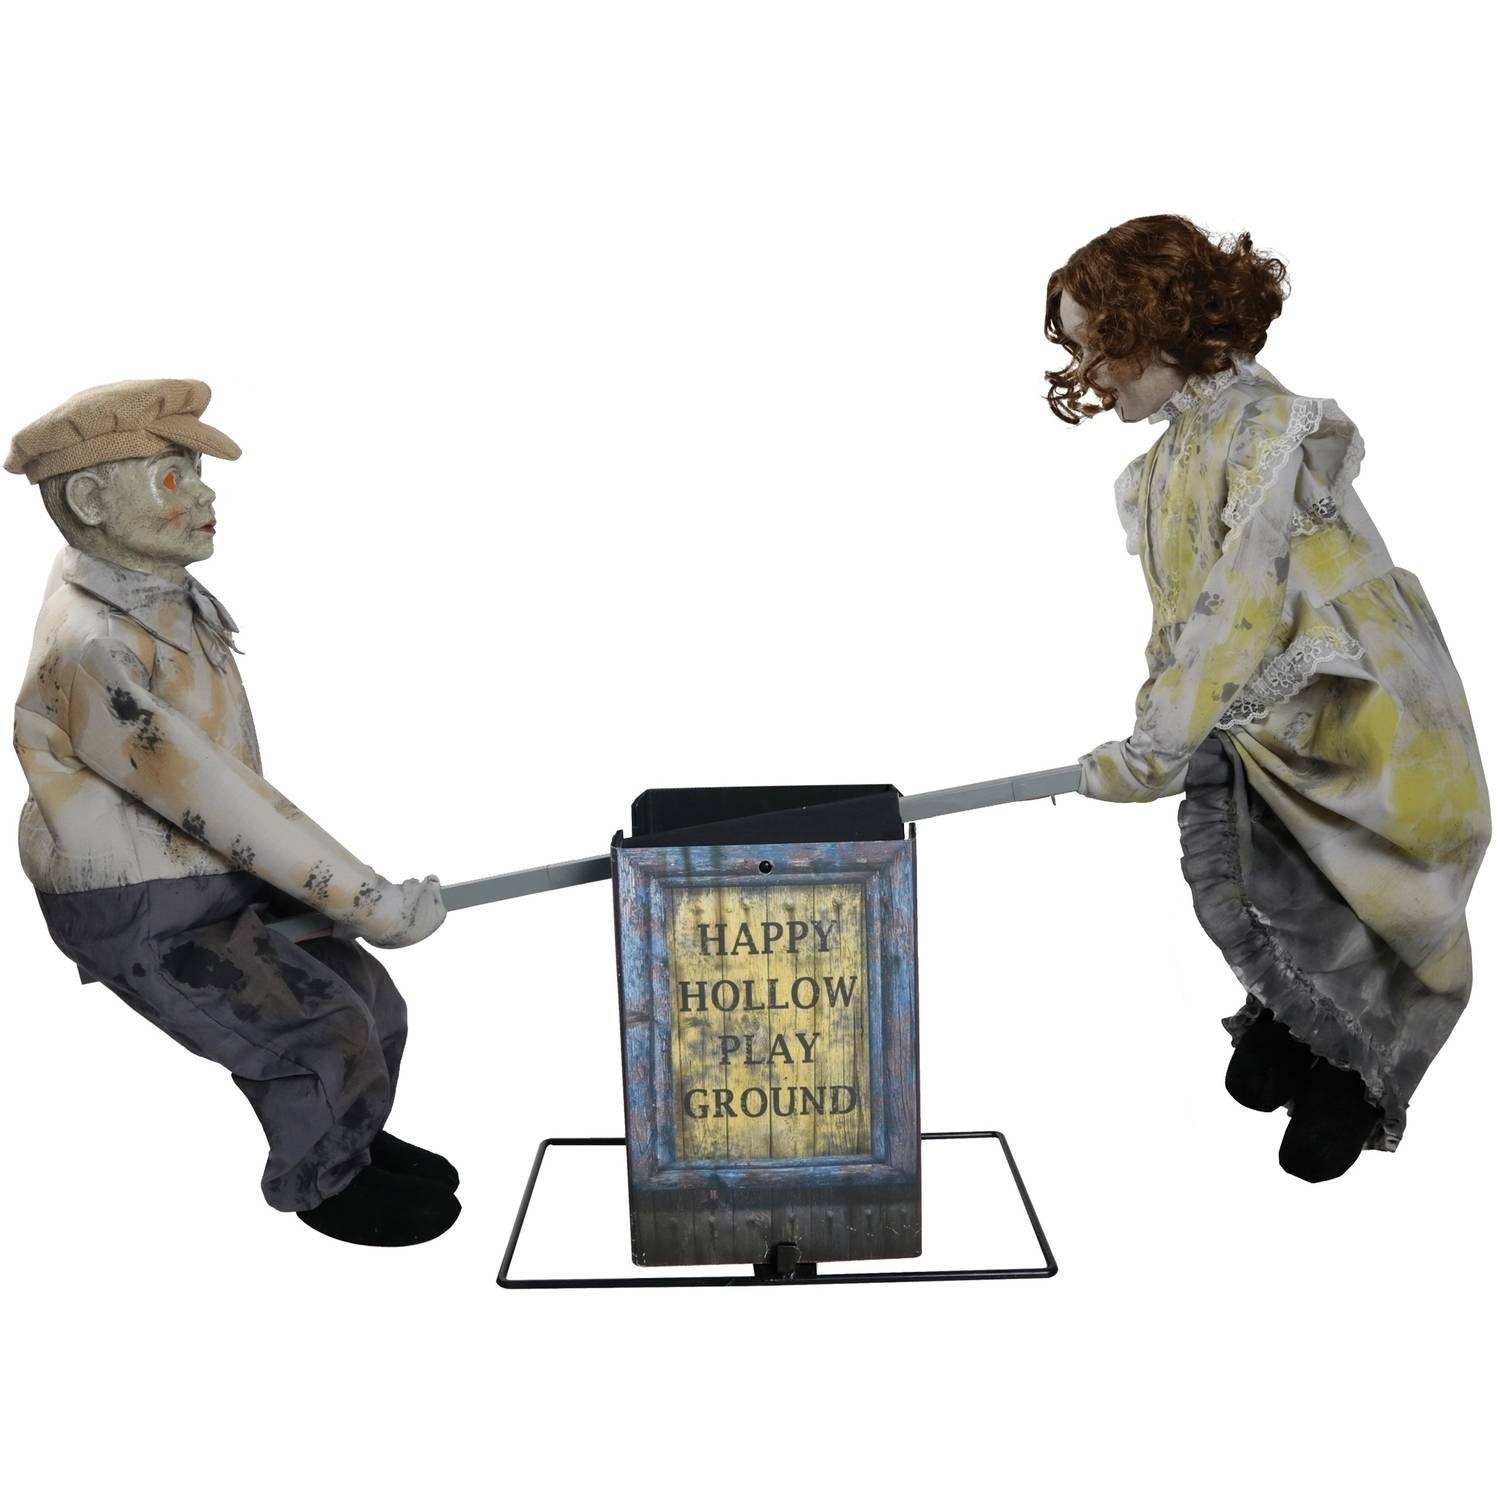 Halloween Outdoor Decoration Creepy See Saw Dolls Playground with Sound Effects